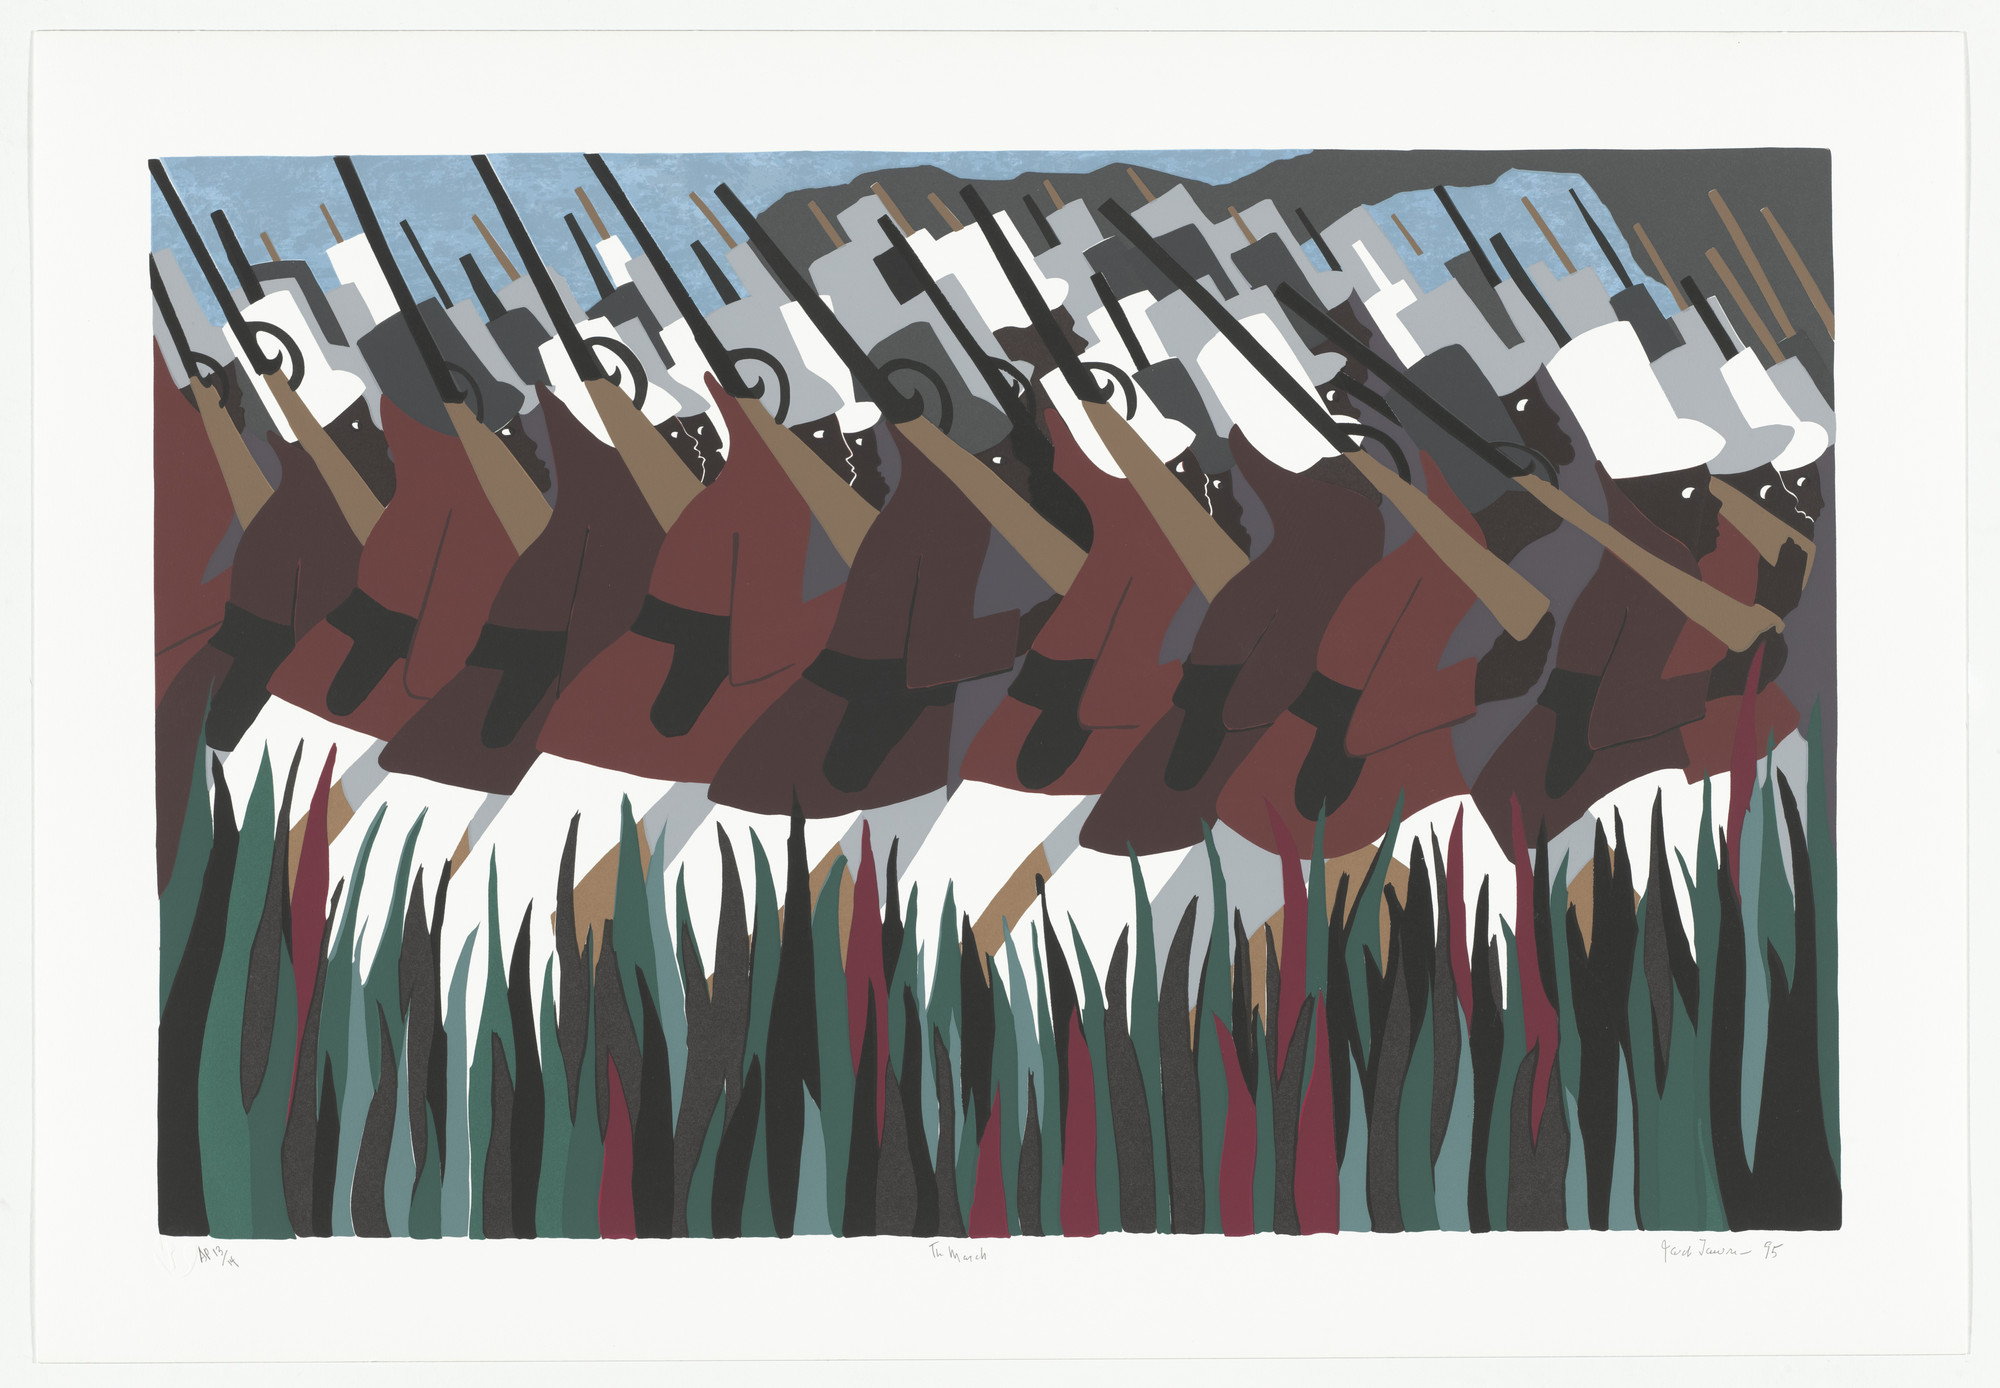 Jacob Lawrence. The March from the series The Life of Toussaint L'Ouverture. 1995